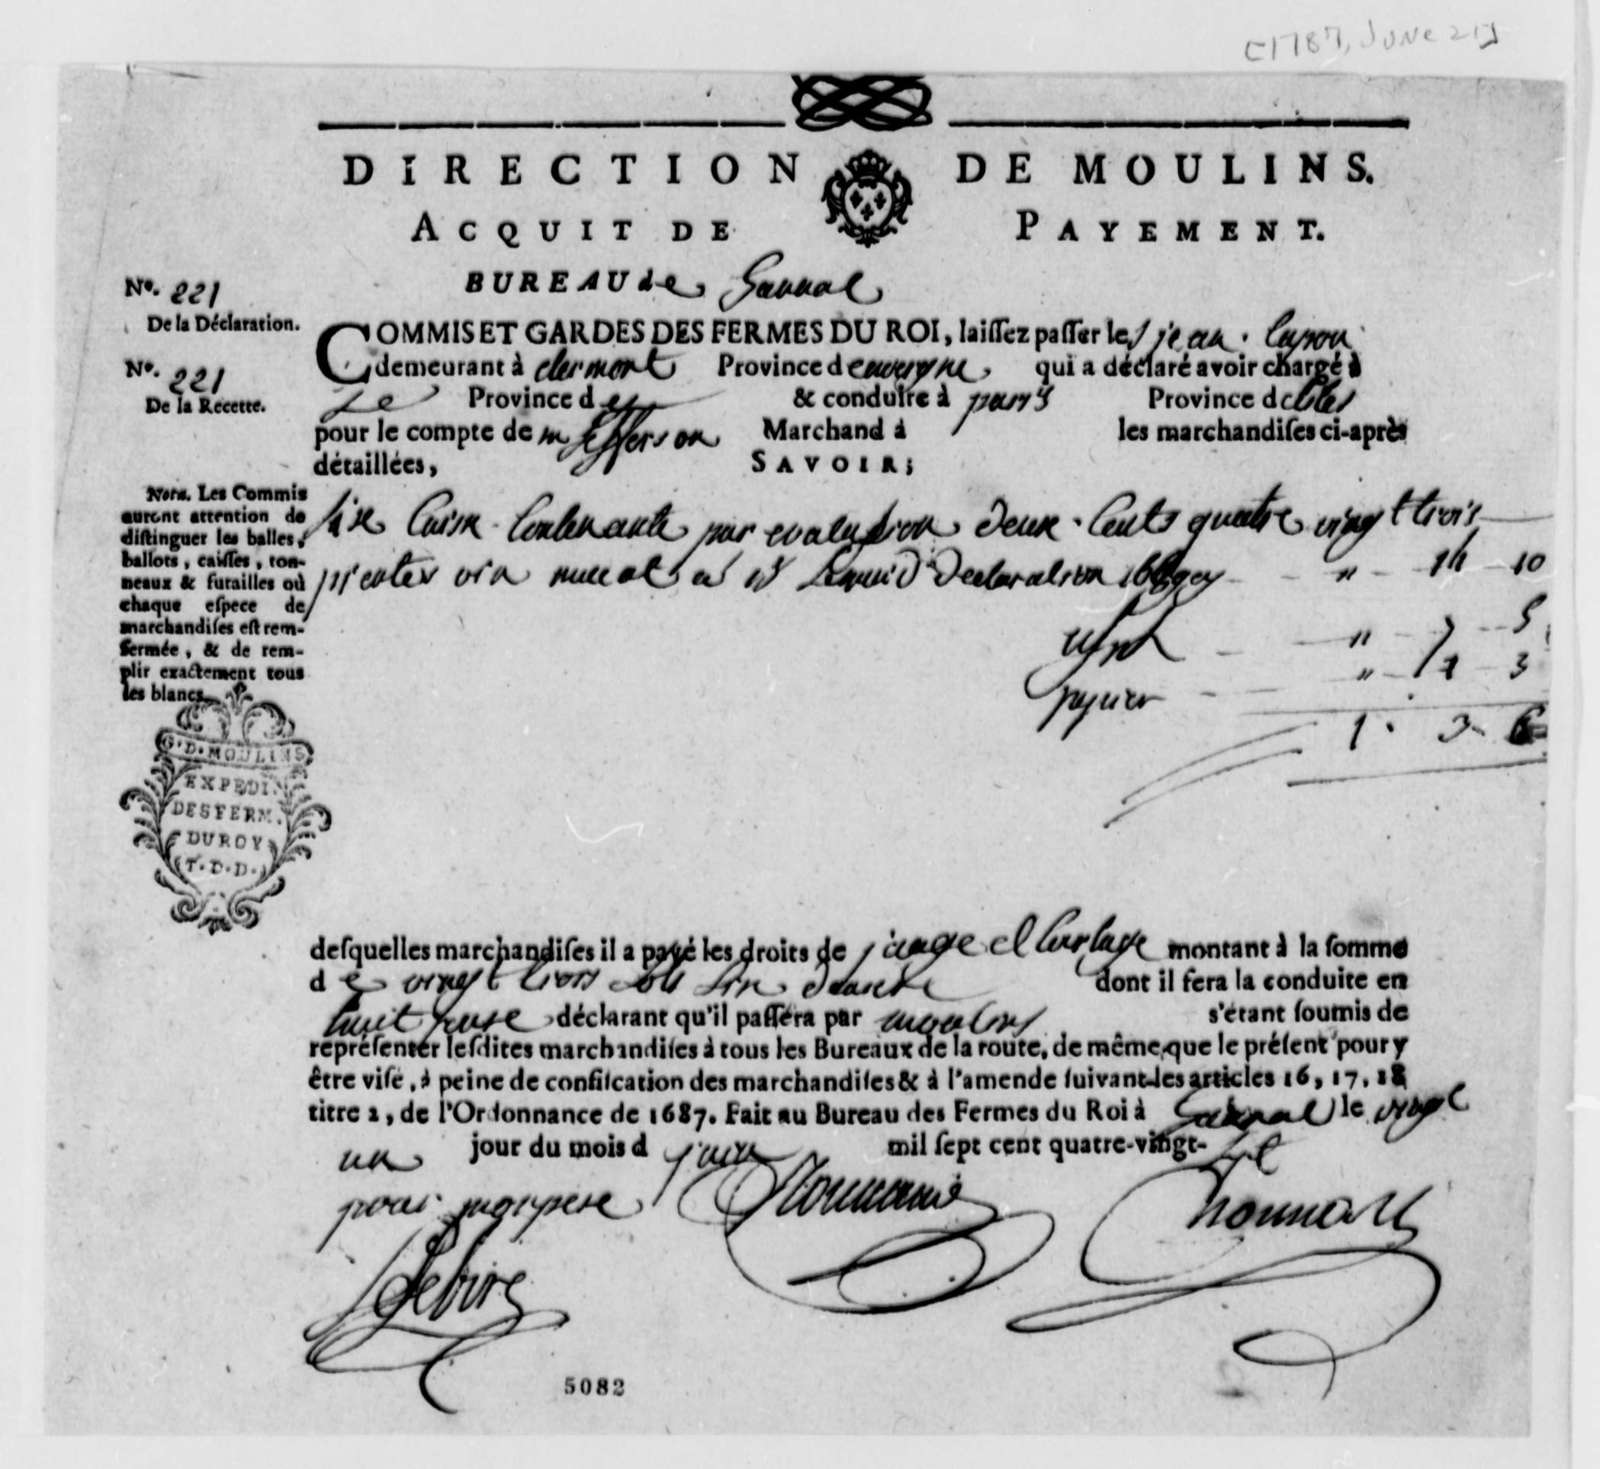 Direction de Moulins, June 21, 1787, Receipt for French Wine Taxes